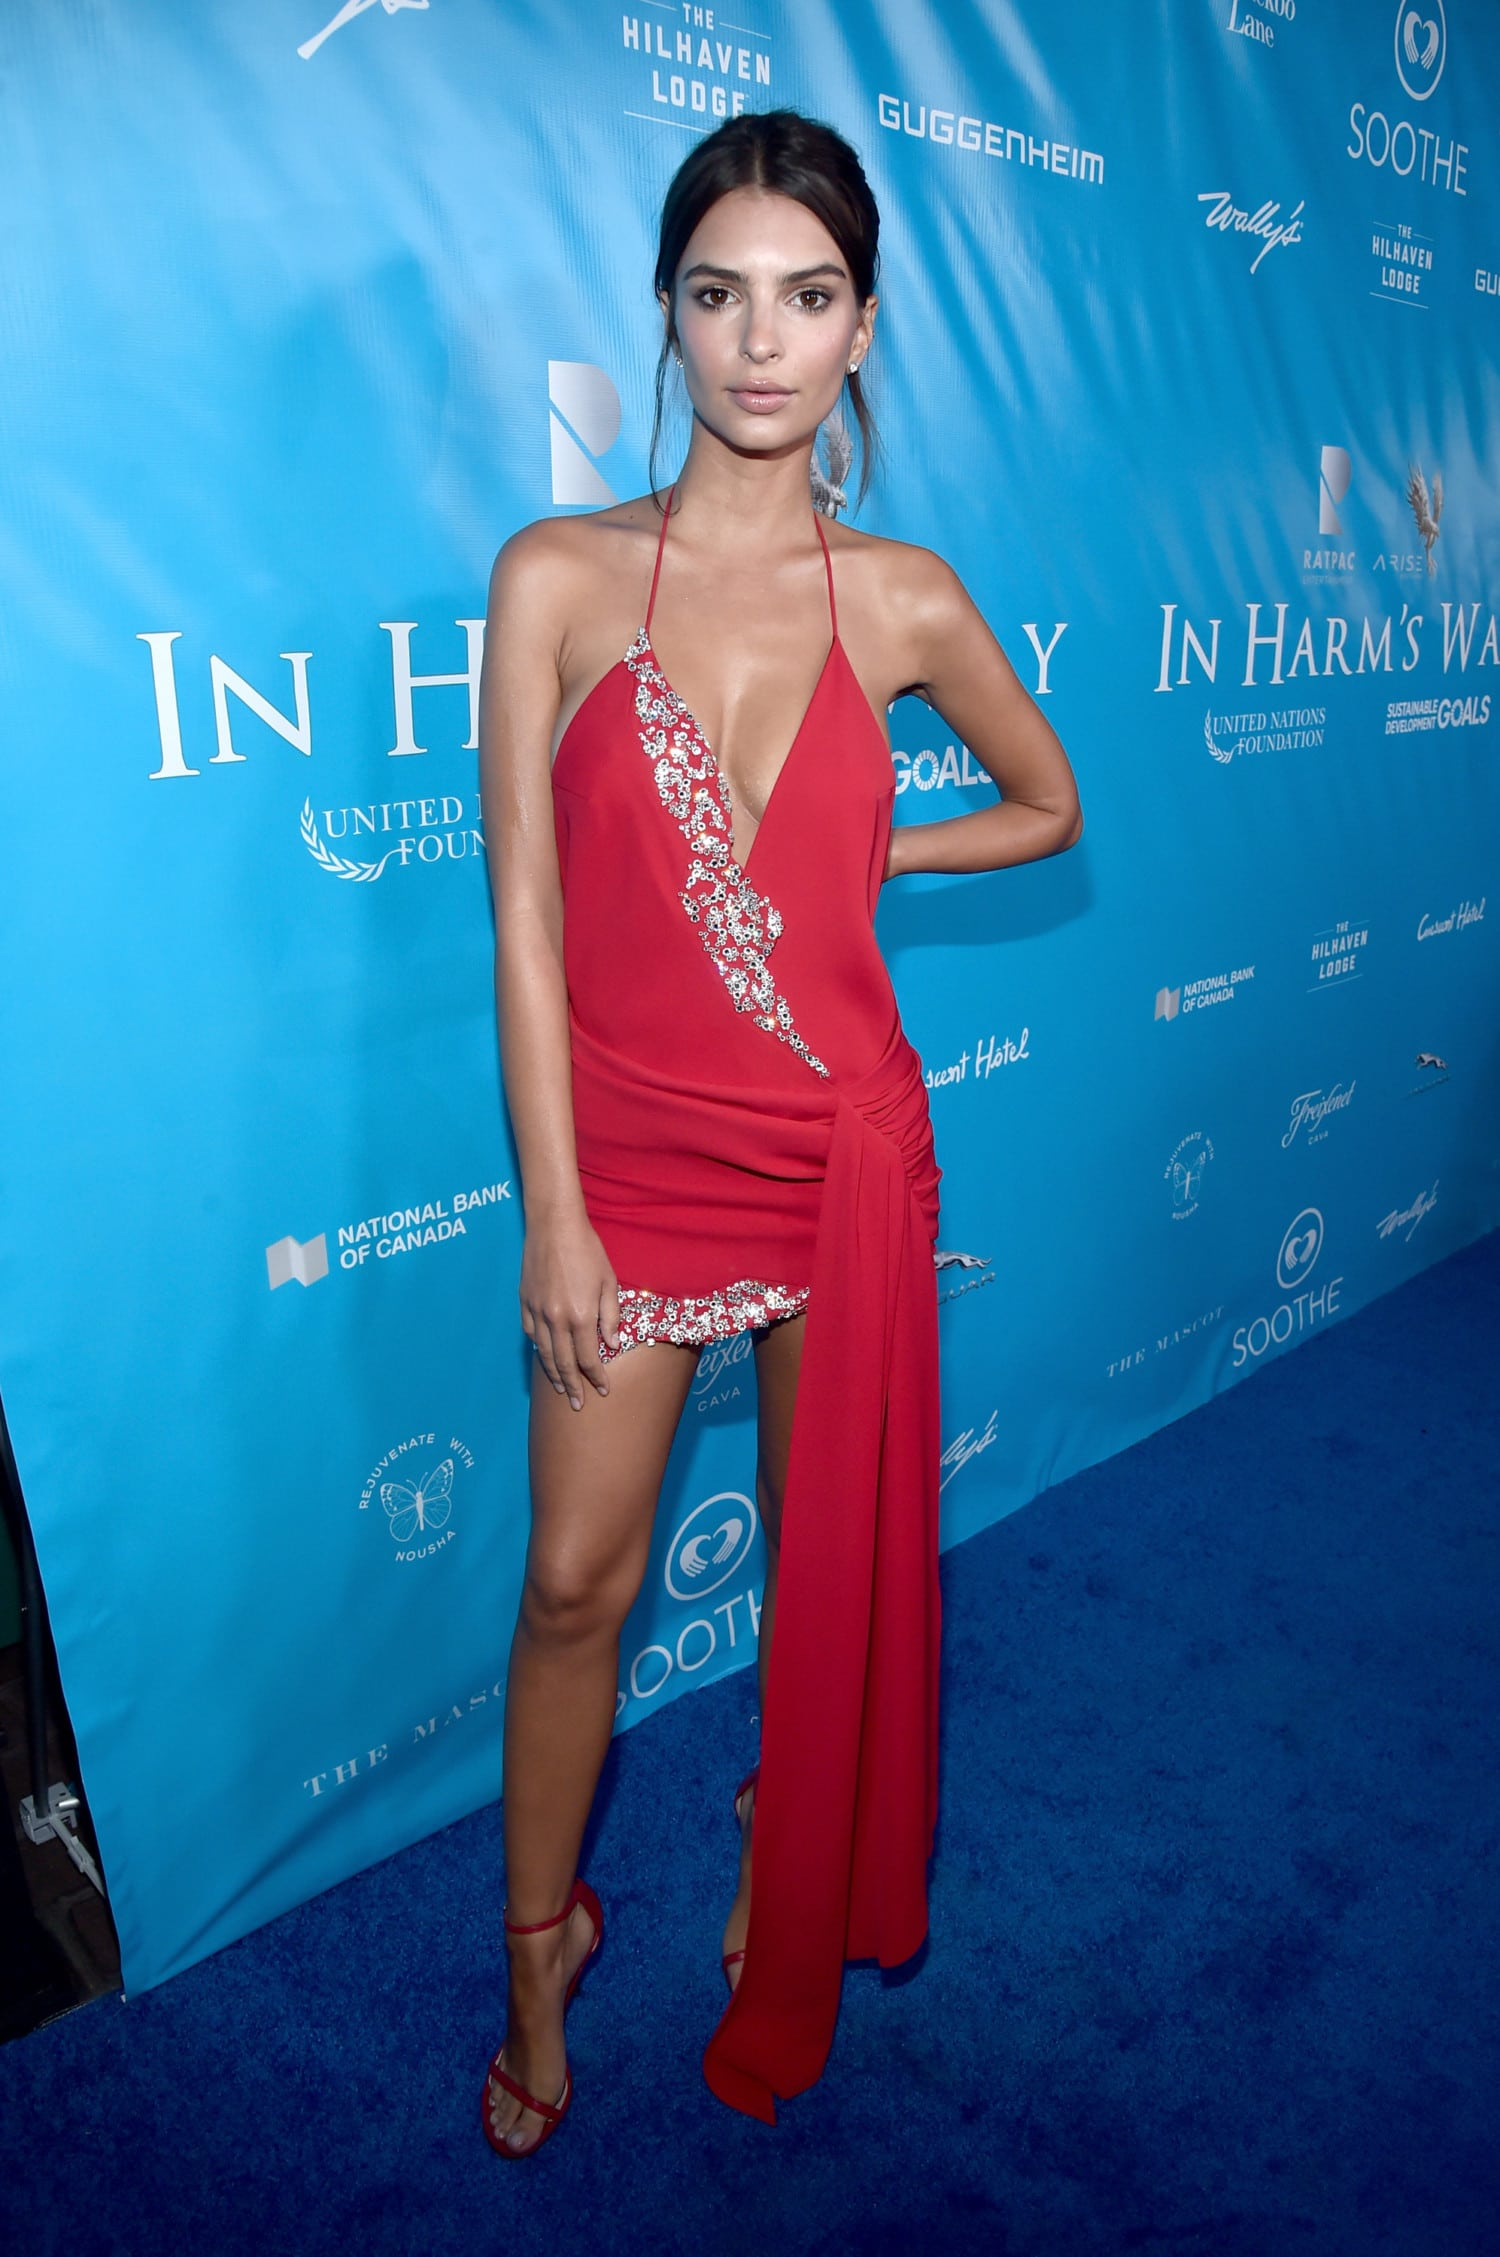 Hot Emily Ratajkowski Red Dress - Emily Ratajkowski Net Worth, Pics, Wallpapers, Career and Biography